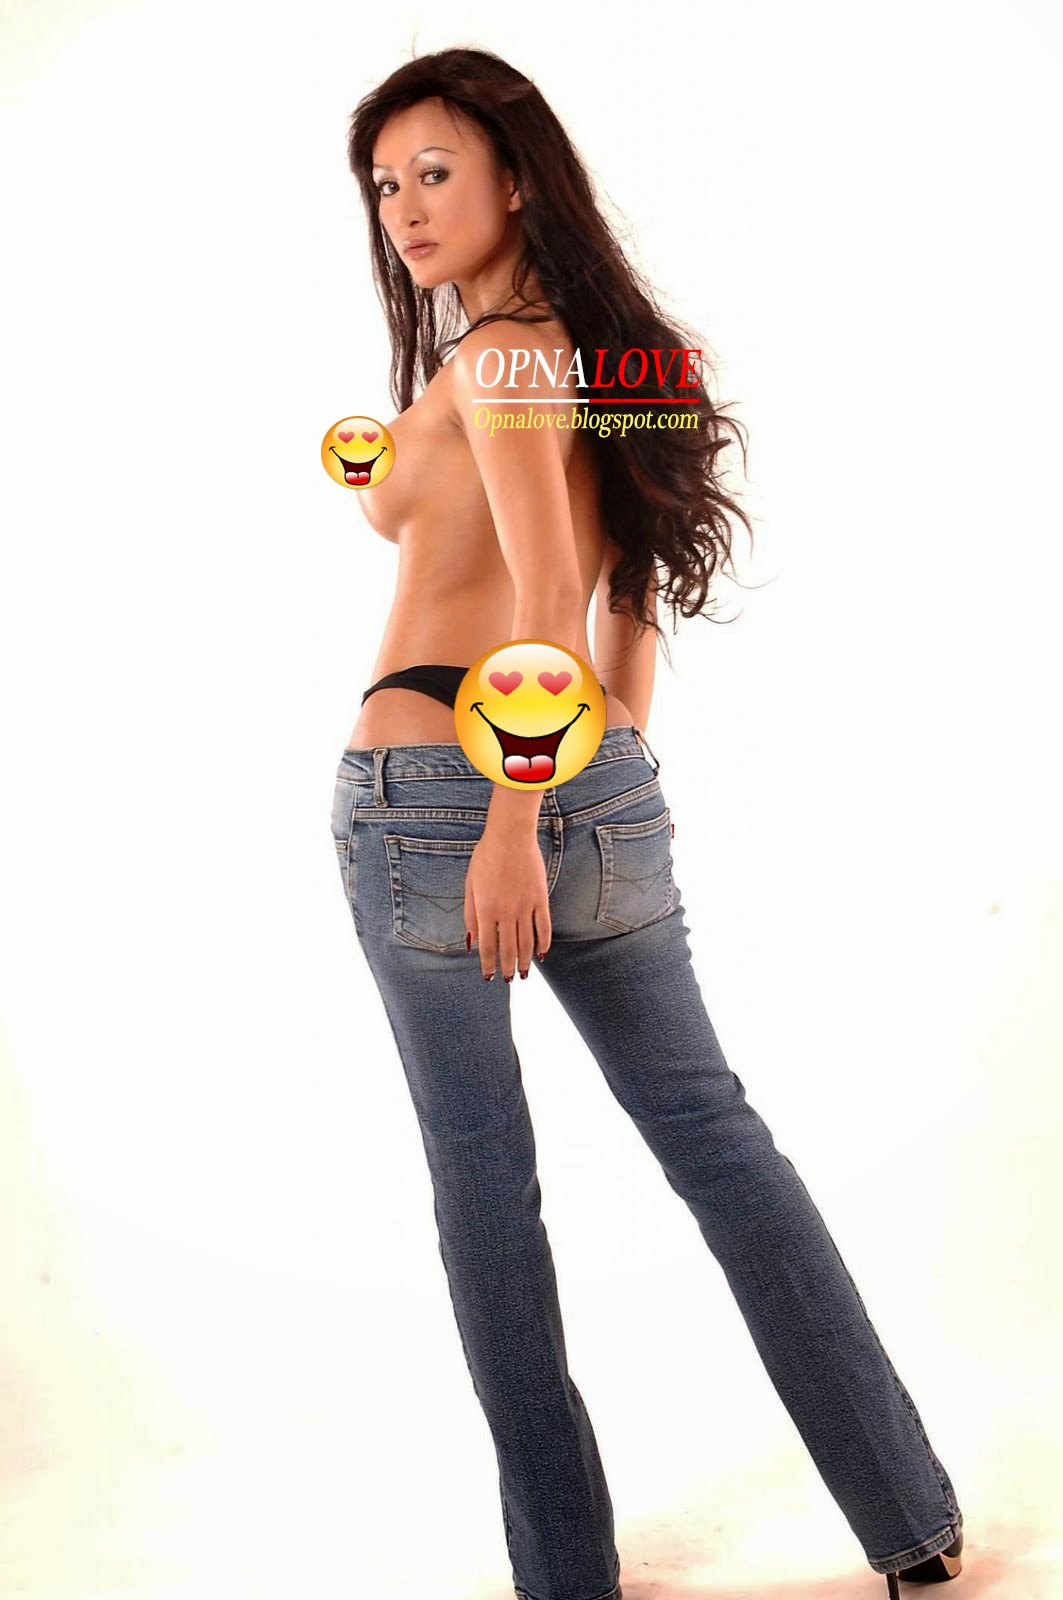 Foto Topless Model Playboy Artis Indonesia - Cynthiara Alona Naked